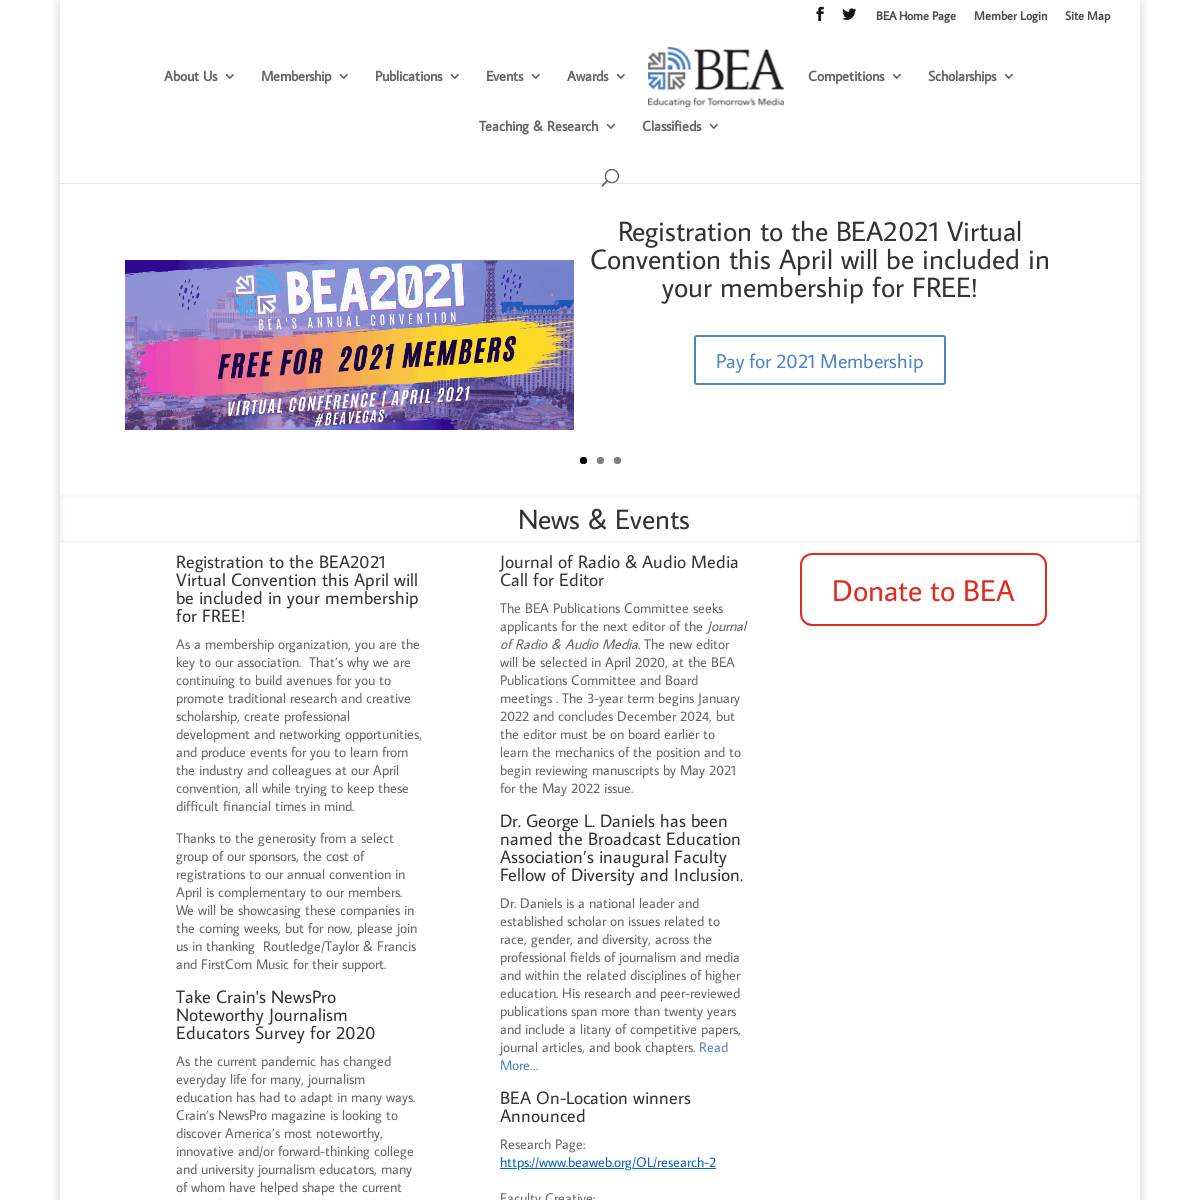 BEA - The Broadcast Education Association - The Association of Media Educators